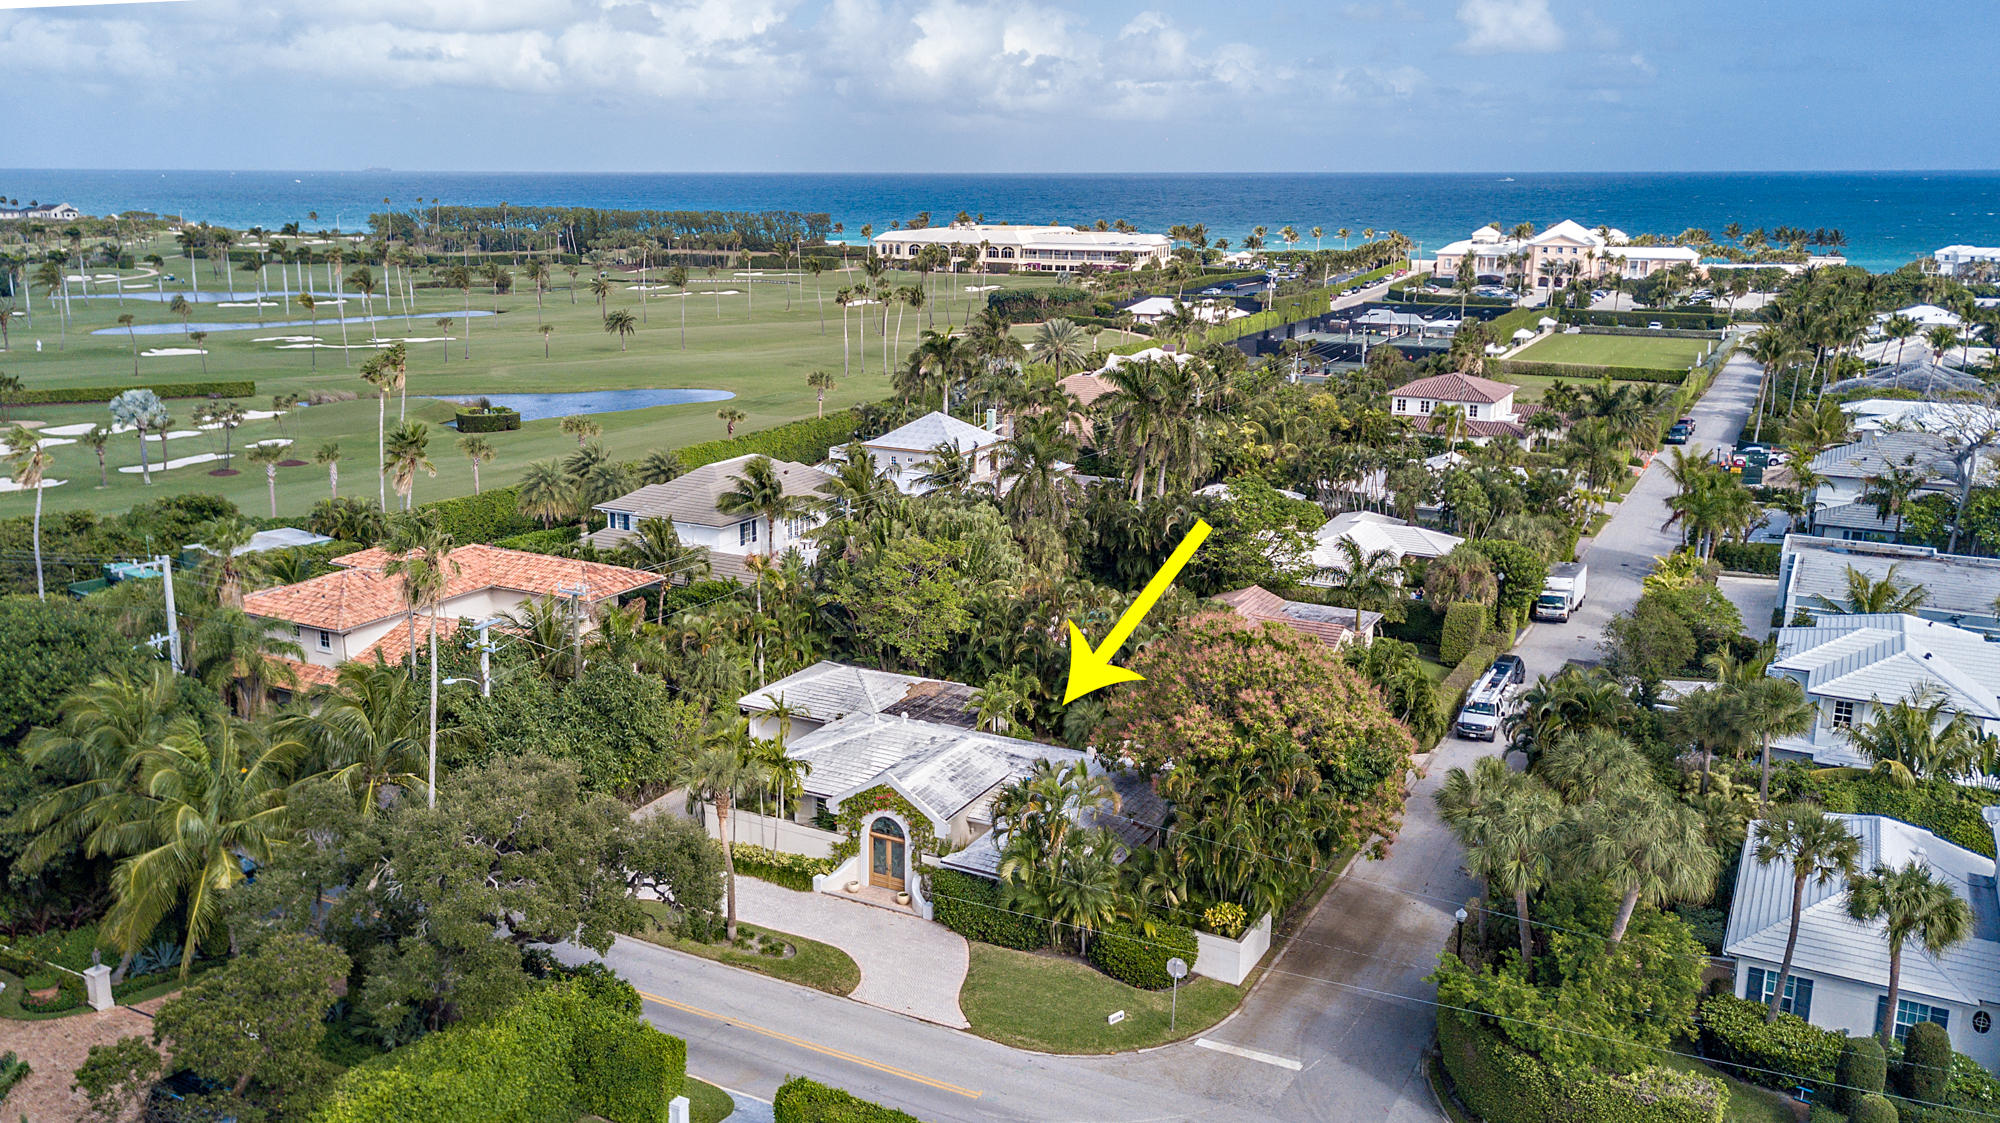 Best value on the market today. Located on an 11,326 SqFt lot comprising over 3,700 total SqFt in the structure. Renovate or build your dream home near the North End. Home has open floor plan with 4-BD and 4-BA perfect for entertaining. Beach and Lake Trail access nearby.